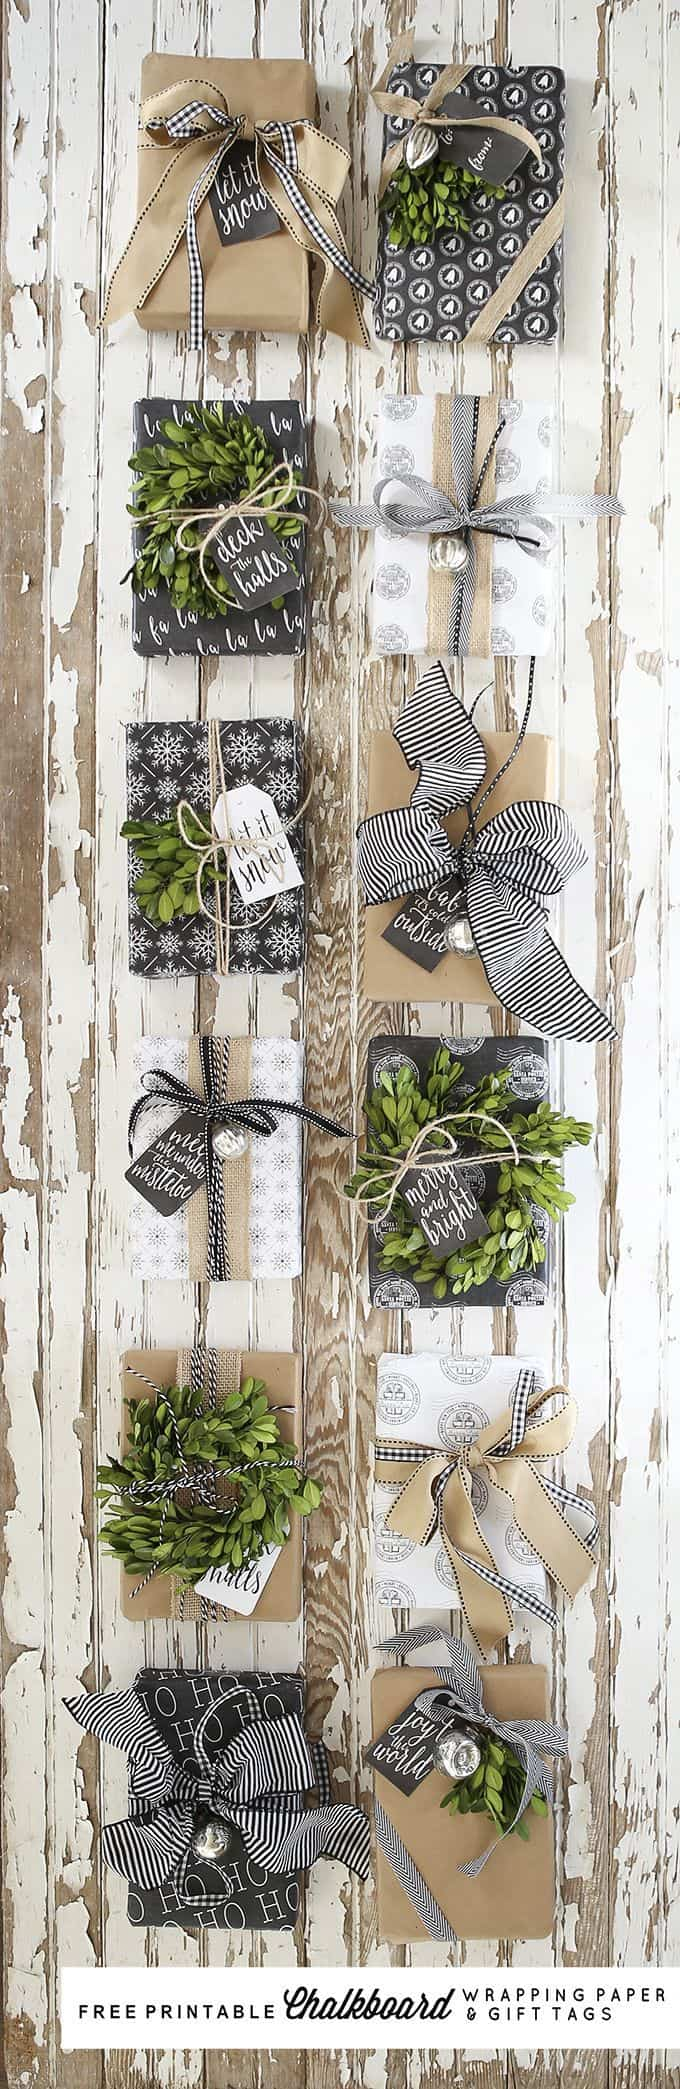 Christmas Gift Wrapping Ideas 3